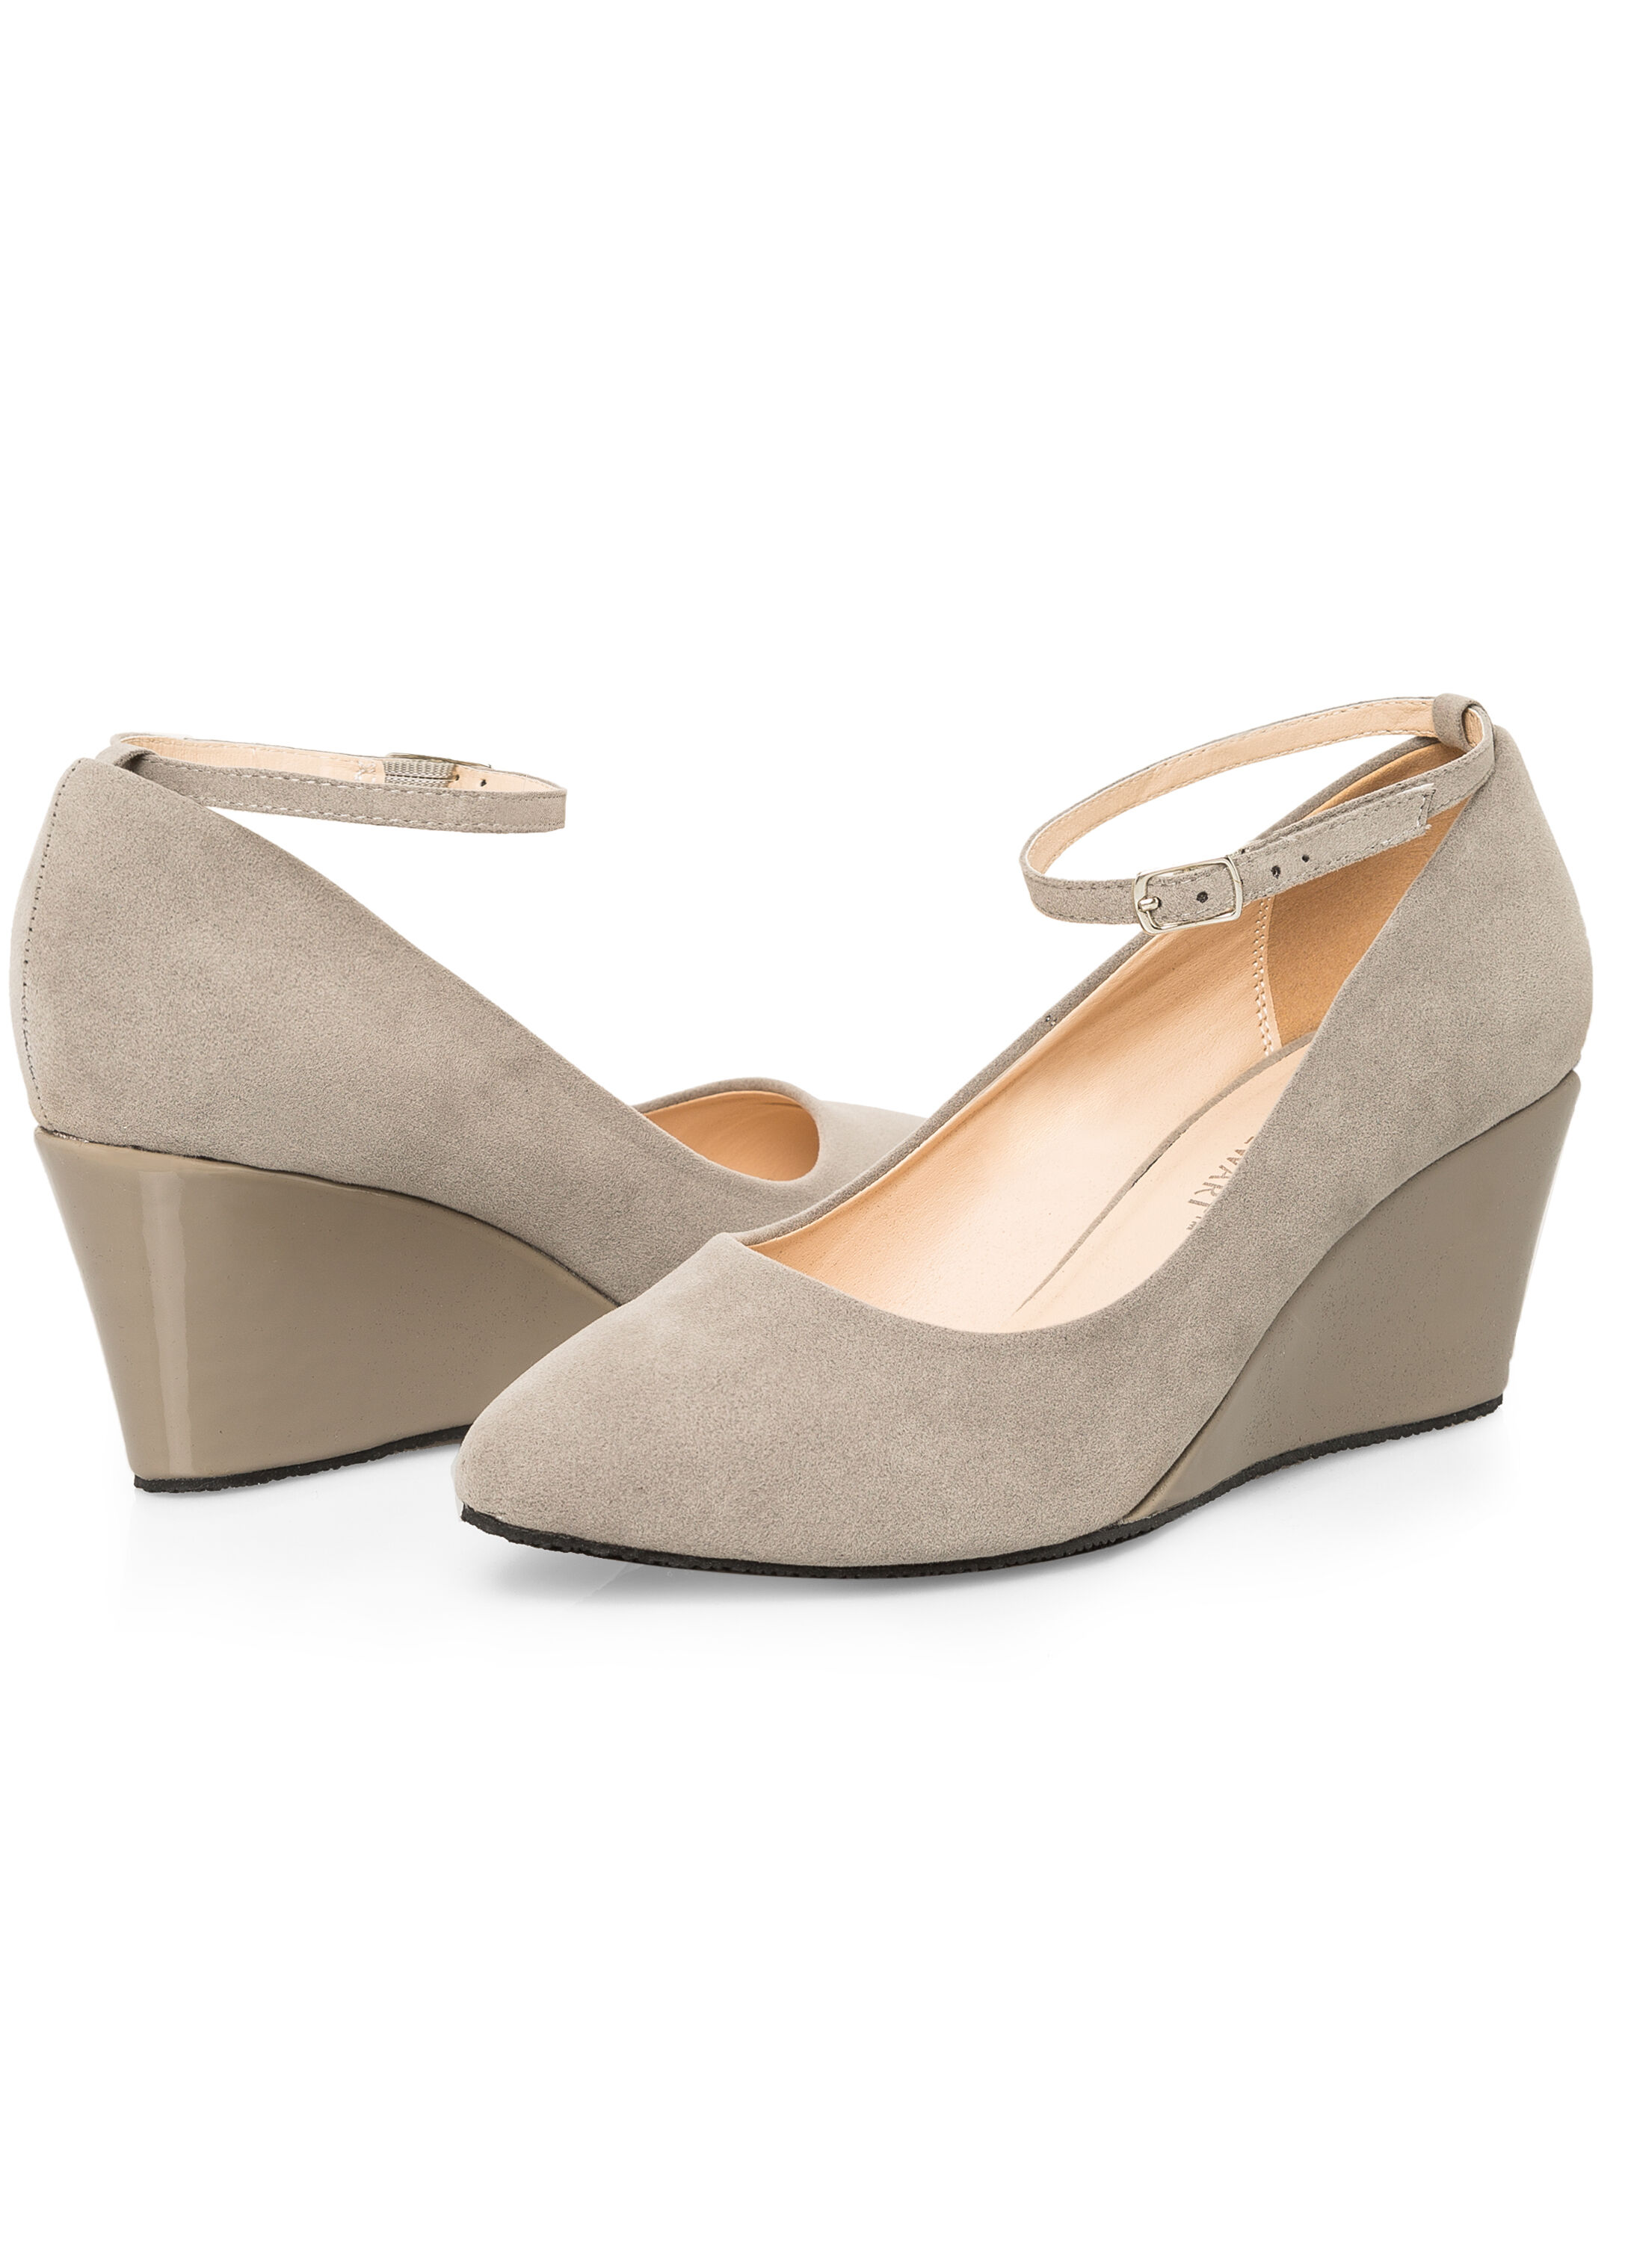 Ankle Strap Contrast Wedge - Wide Width